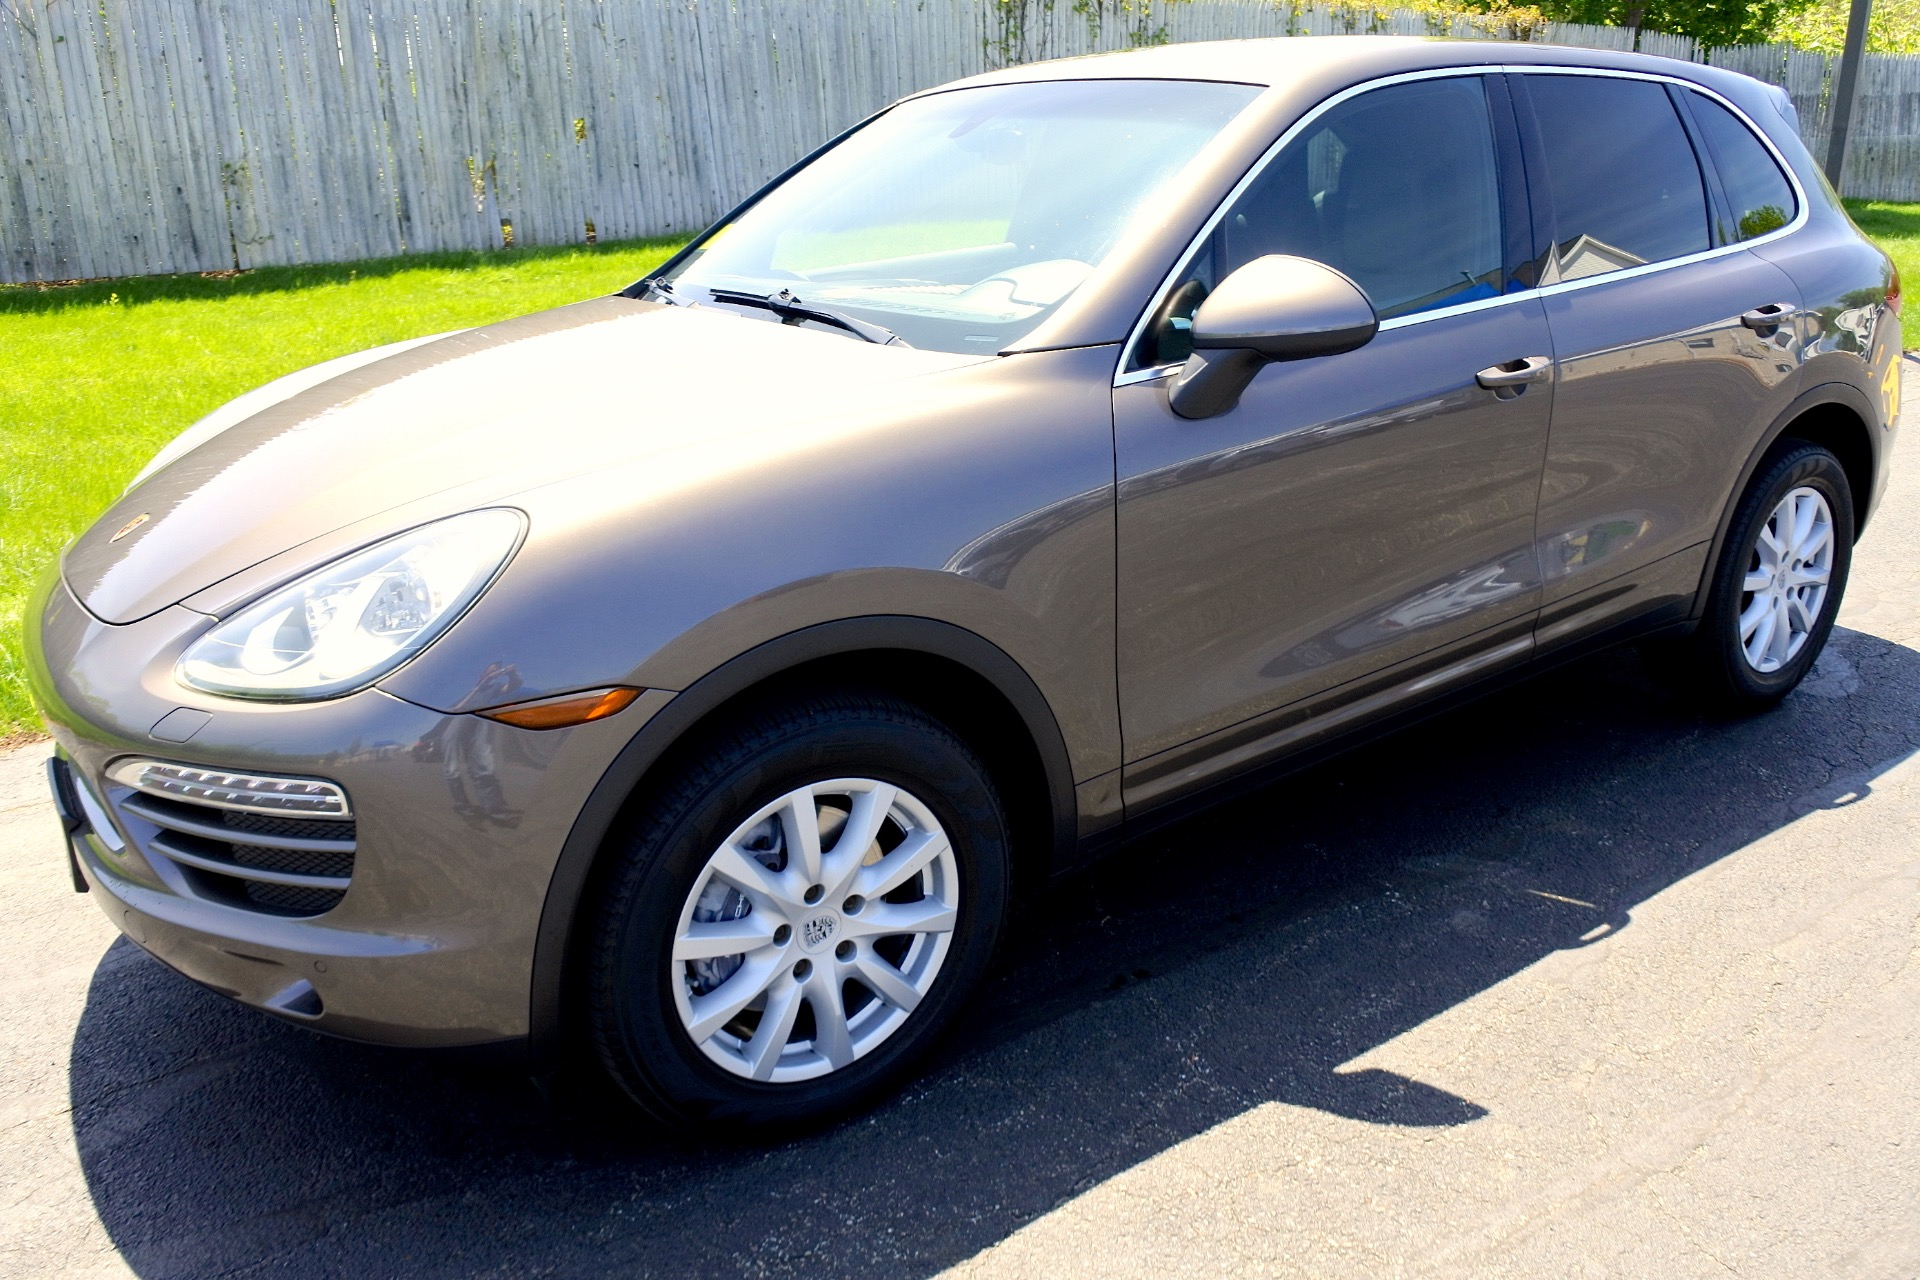 Used 2011 Porsche Cayenne AWD Used 2011 Porsche Cayenne AWD for sale  at Metro West Motorcars LLC in Shrewsbury MA 1